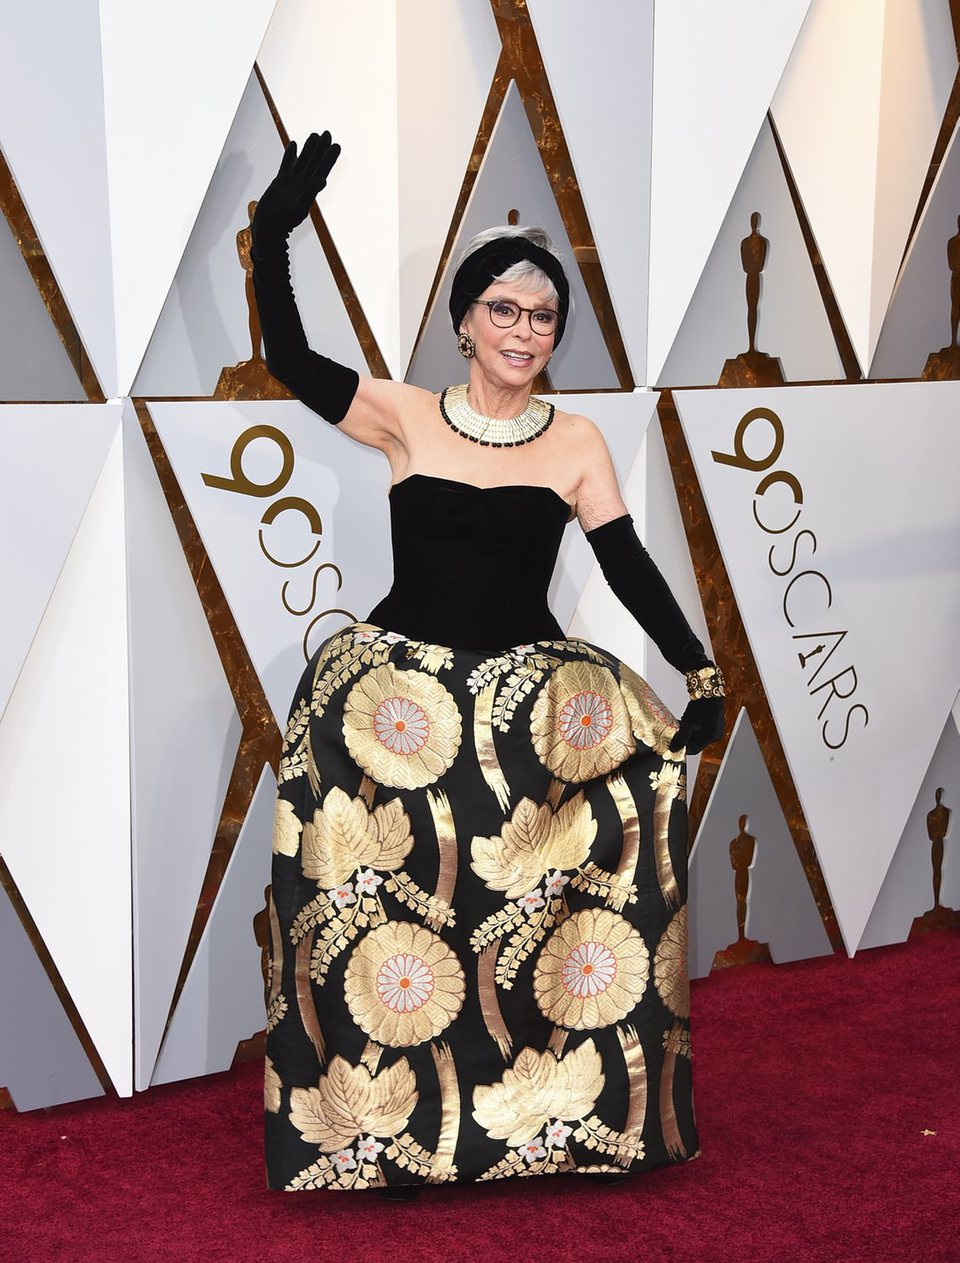 Rita Moreno at the red carpet of the Oscars 2018